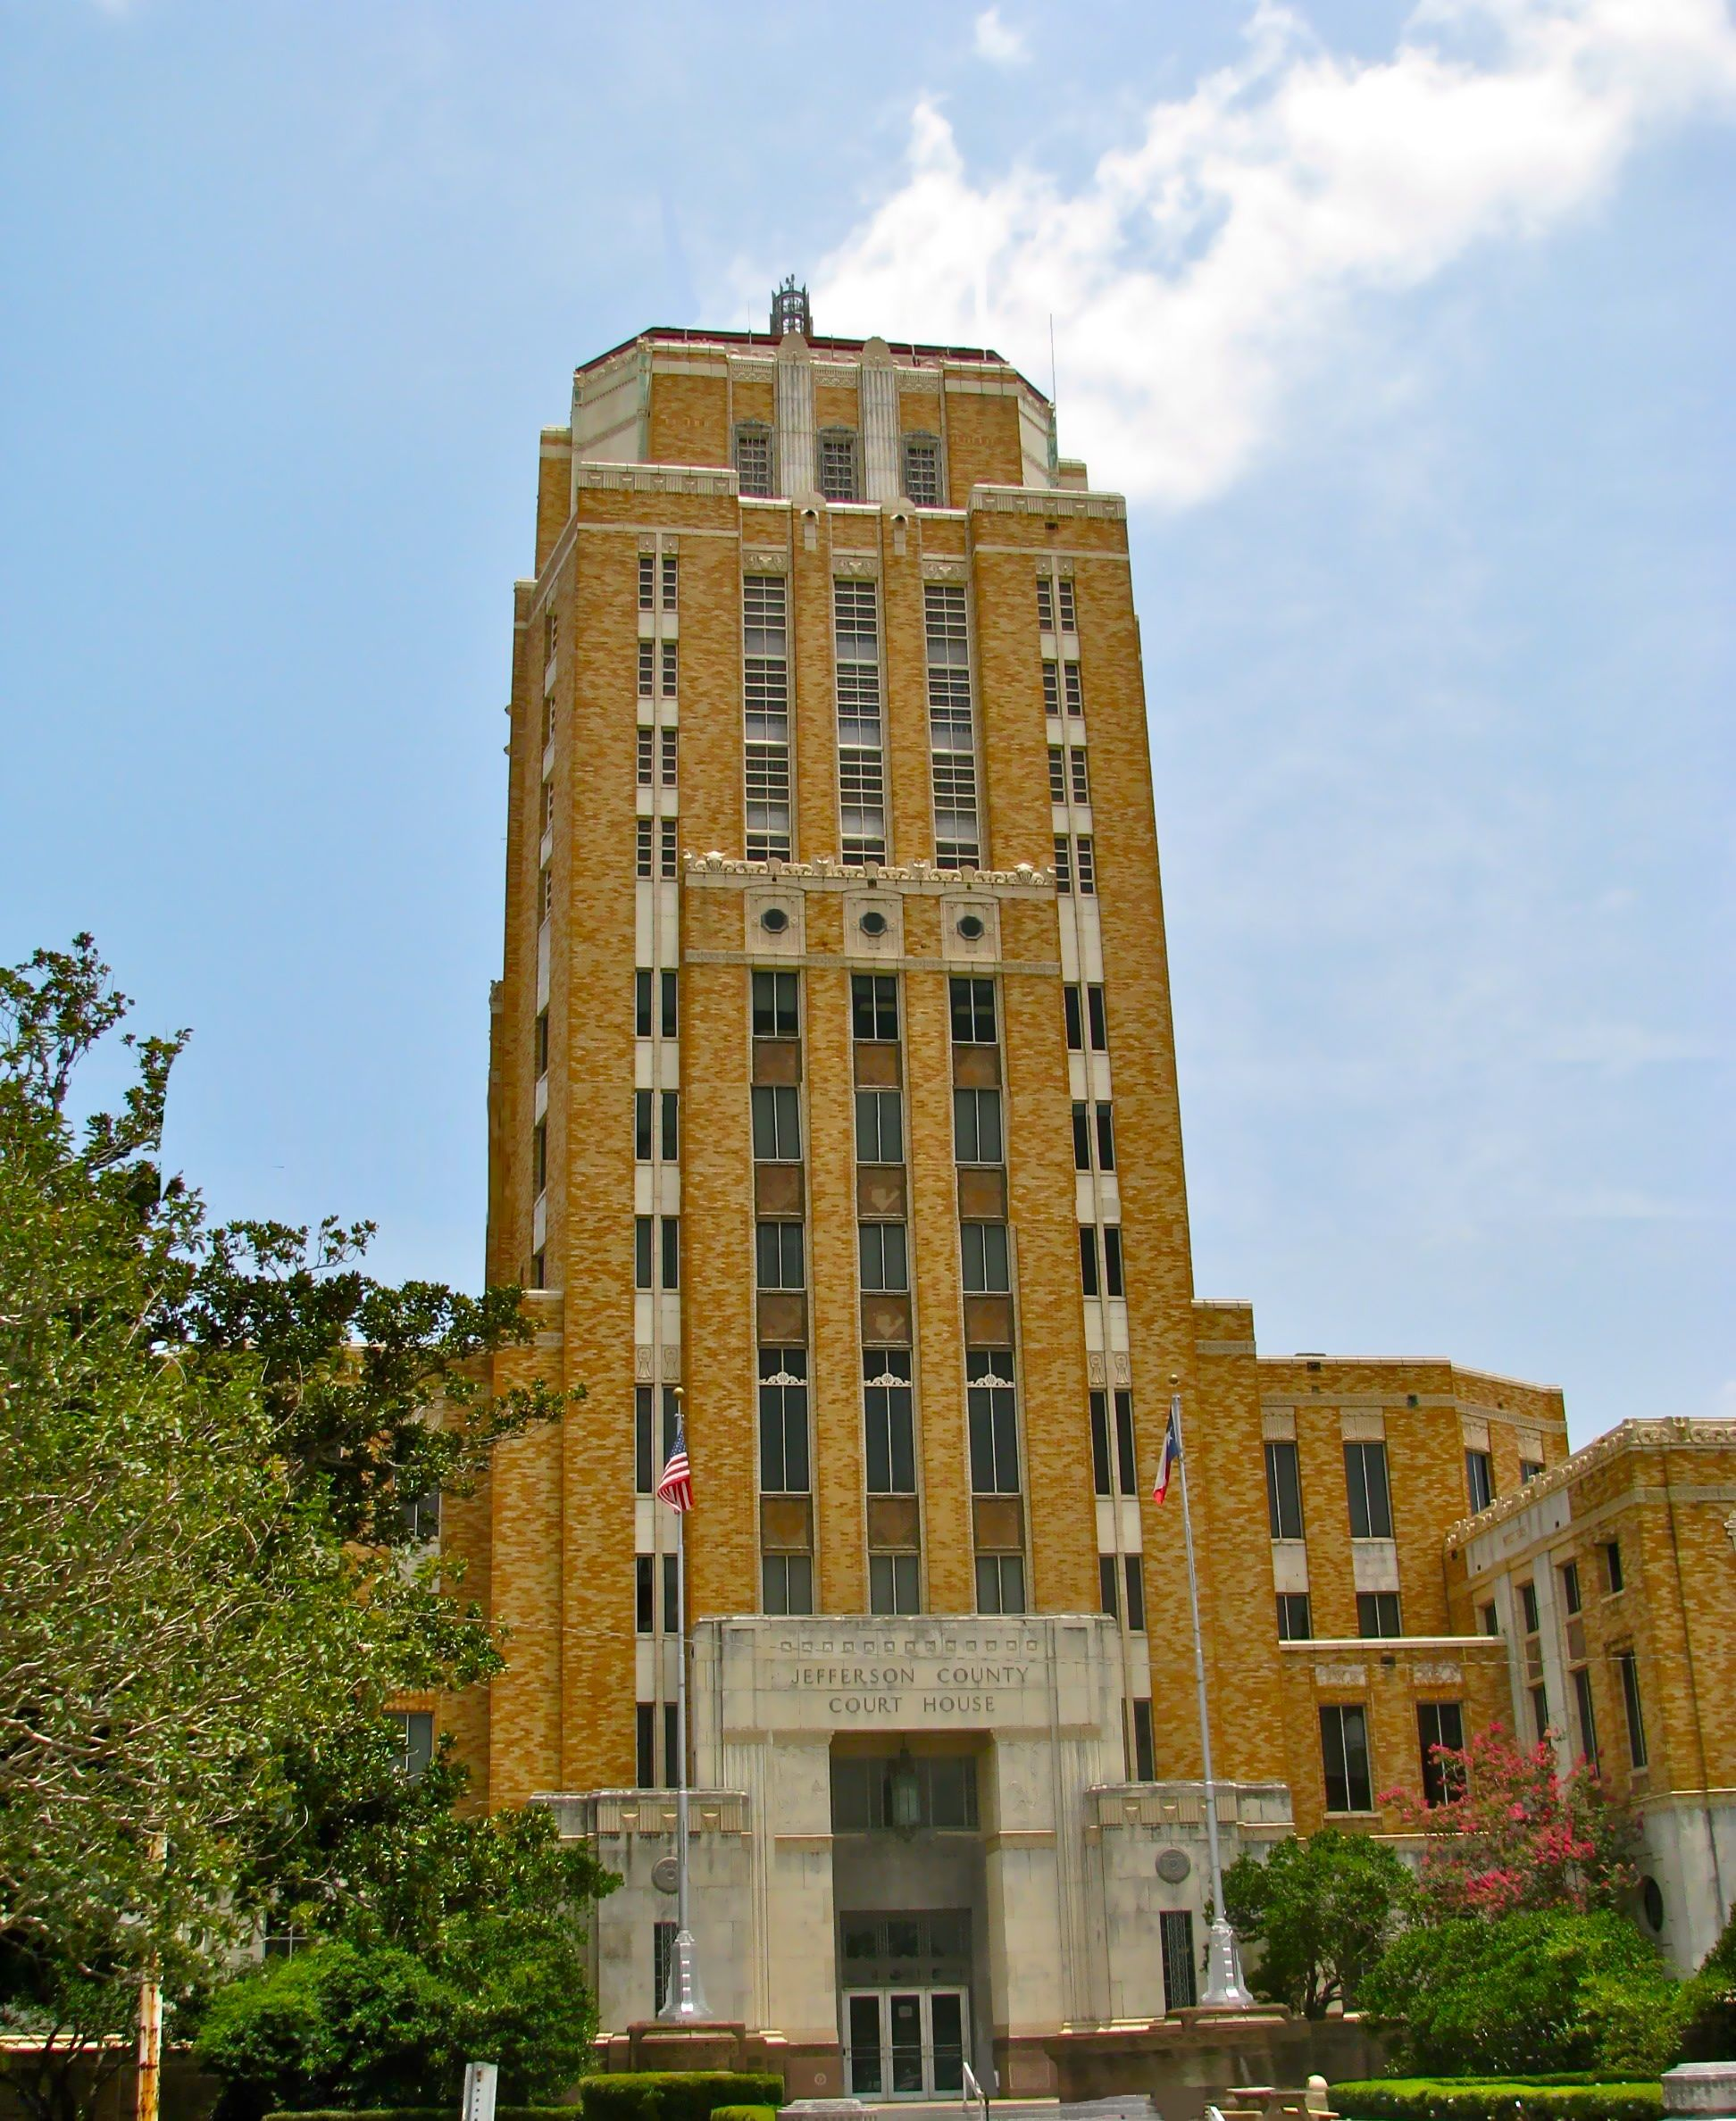 The Jefferson County Courthouse was constructed in 1931 and is among the tallest courthouses in the state.